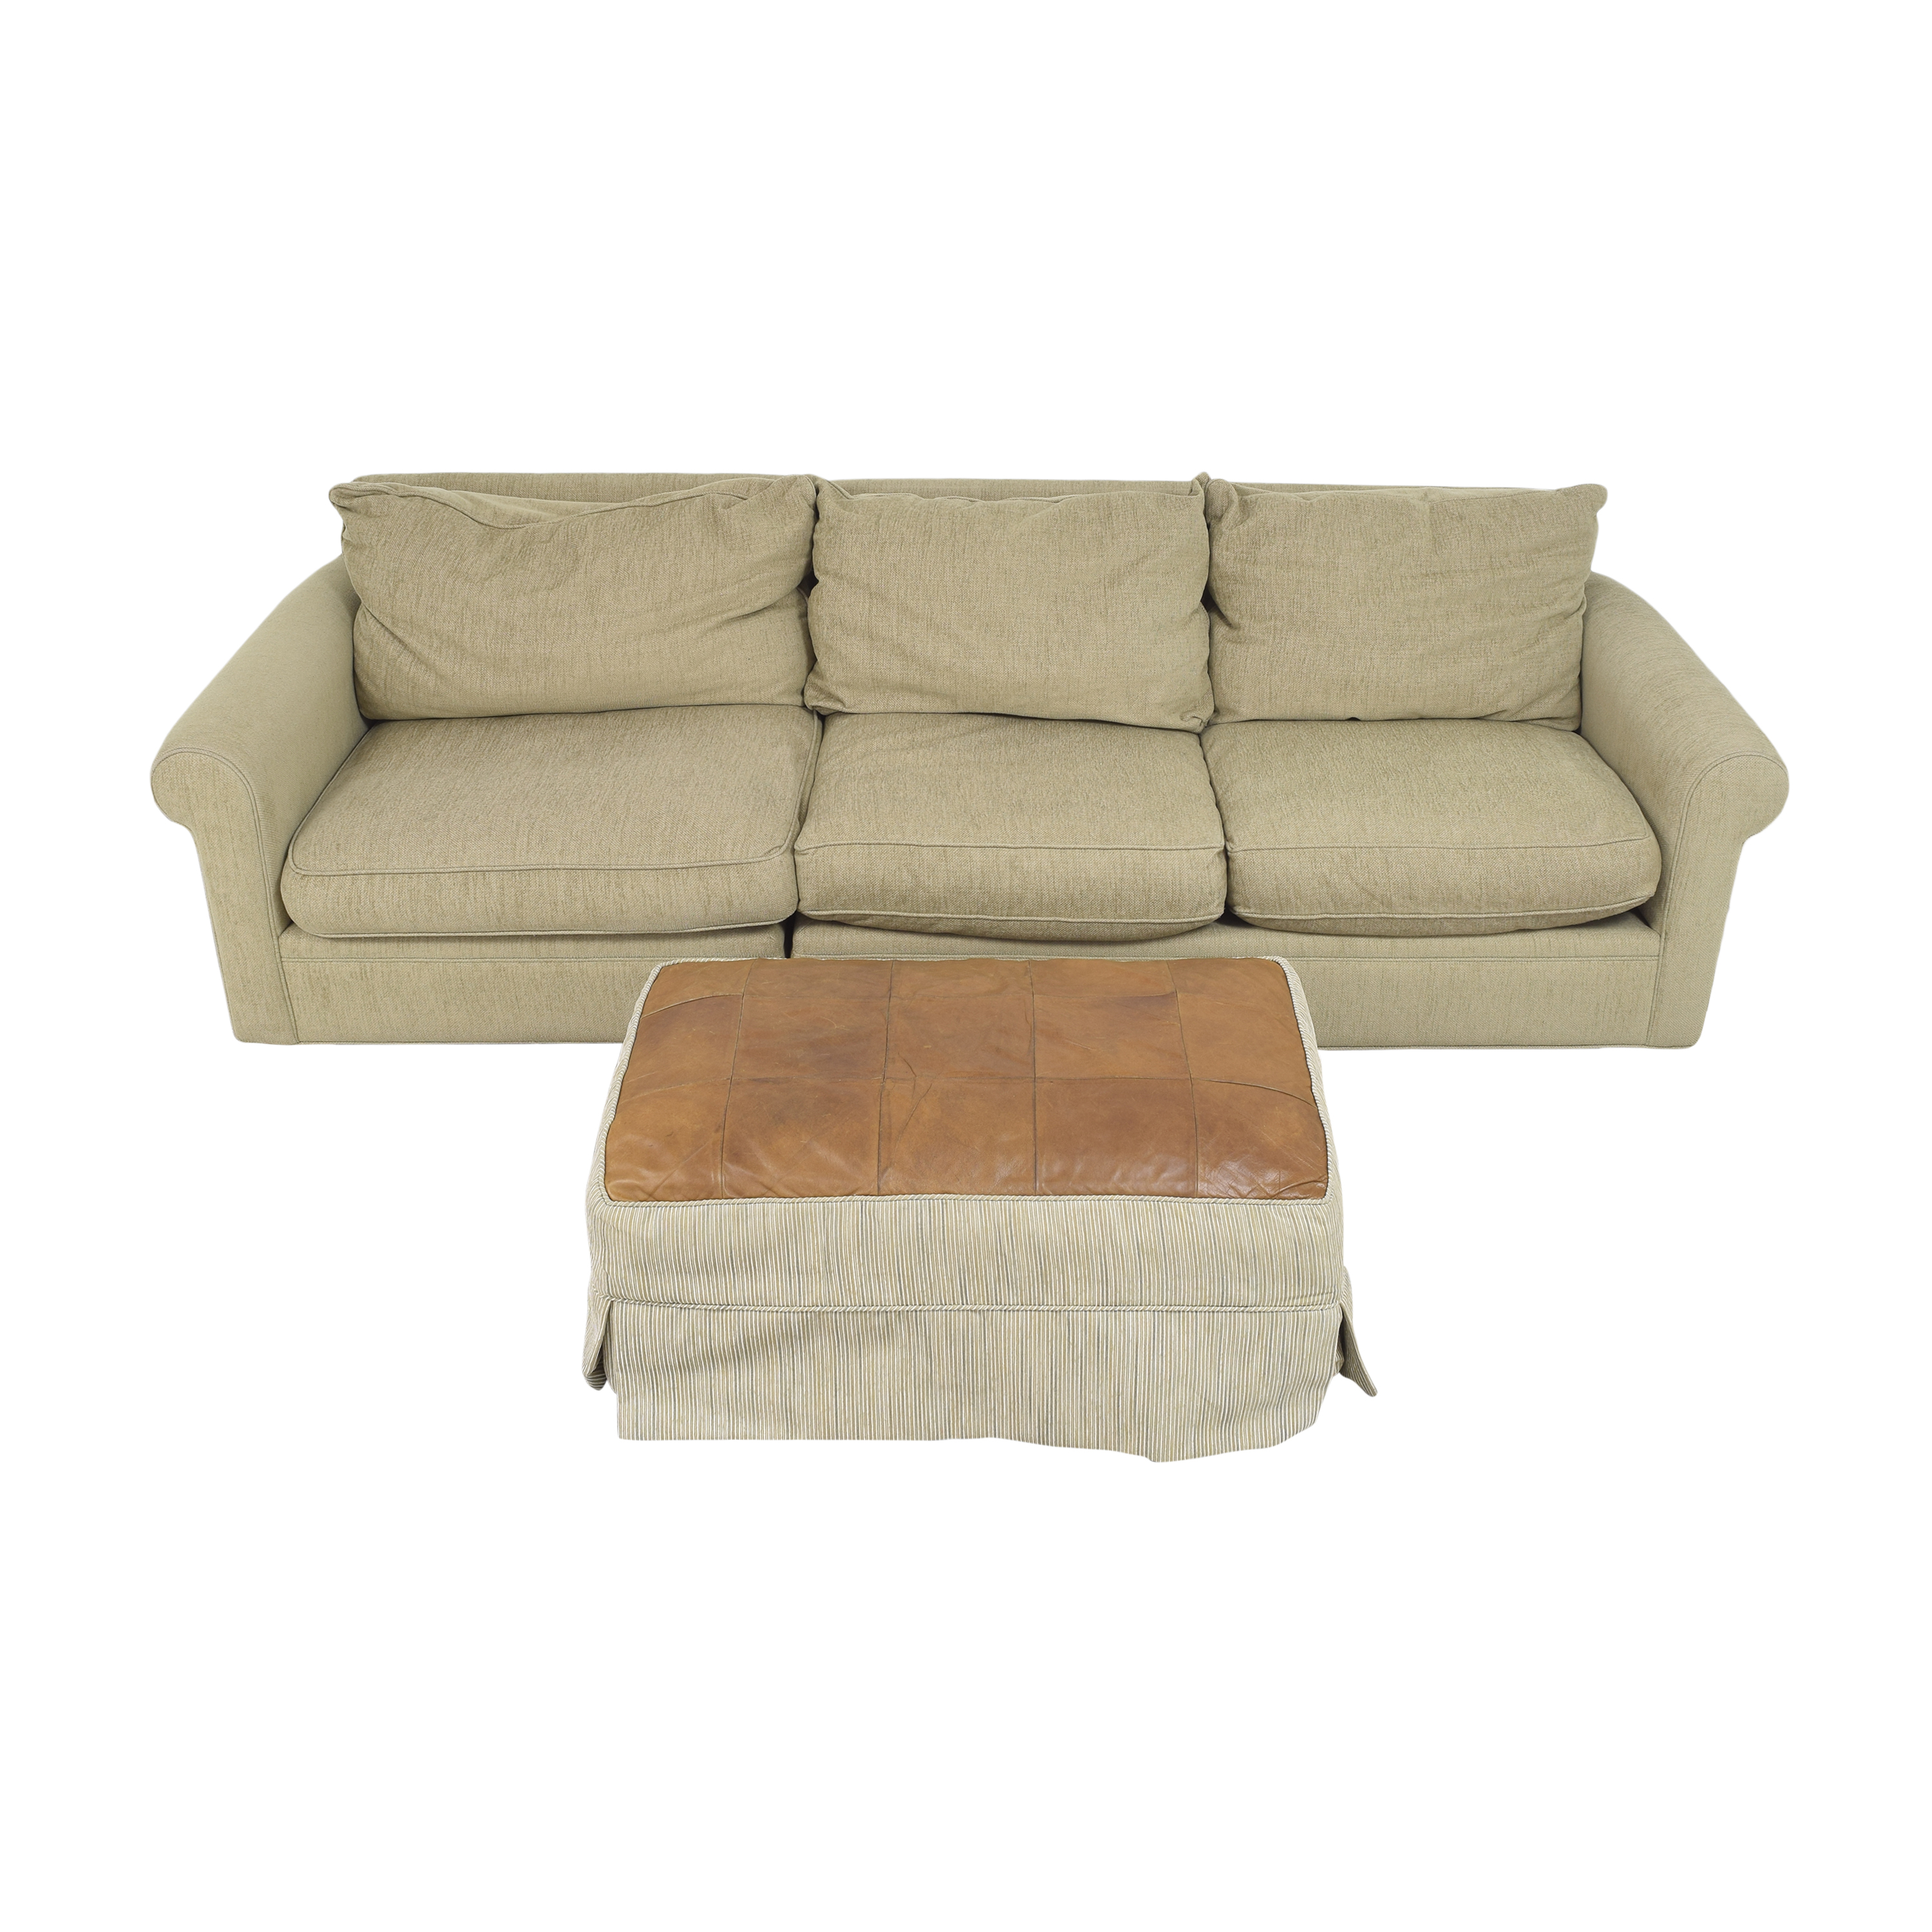 Macy's Macy's Modern Concepts Sofa with Ottoman second hand